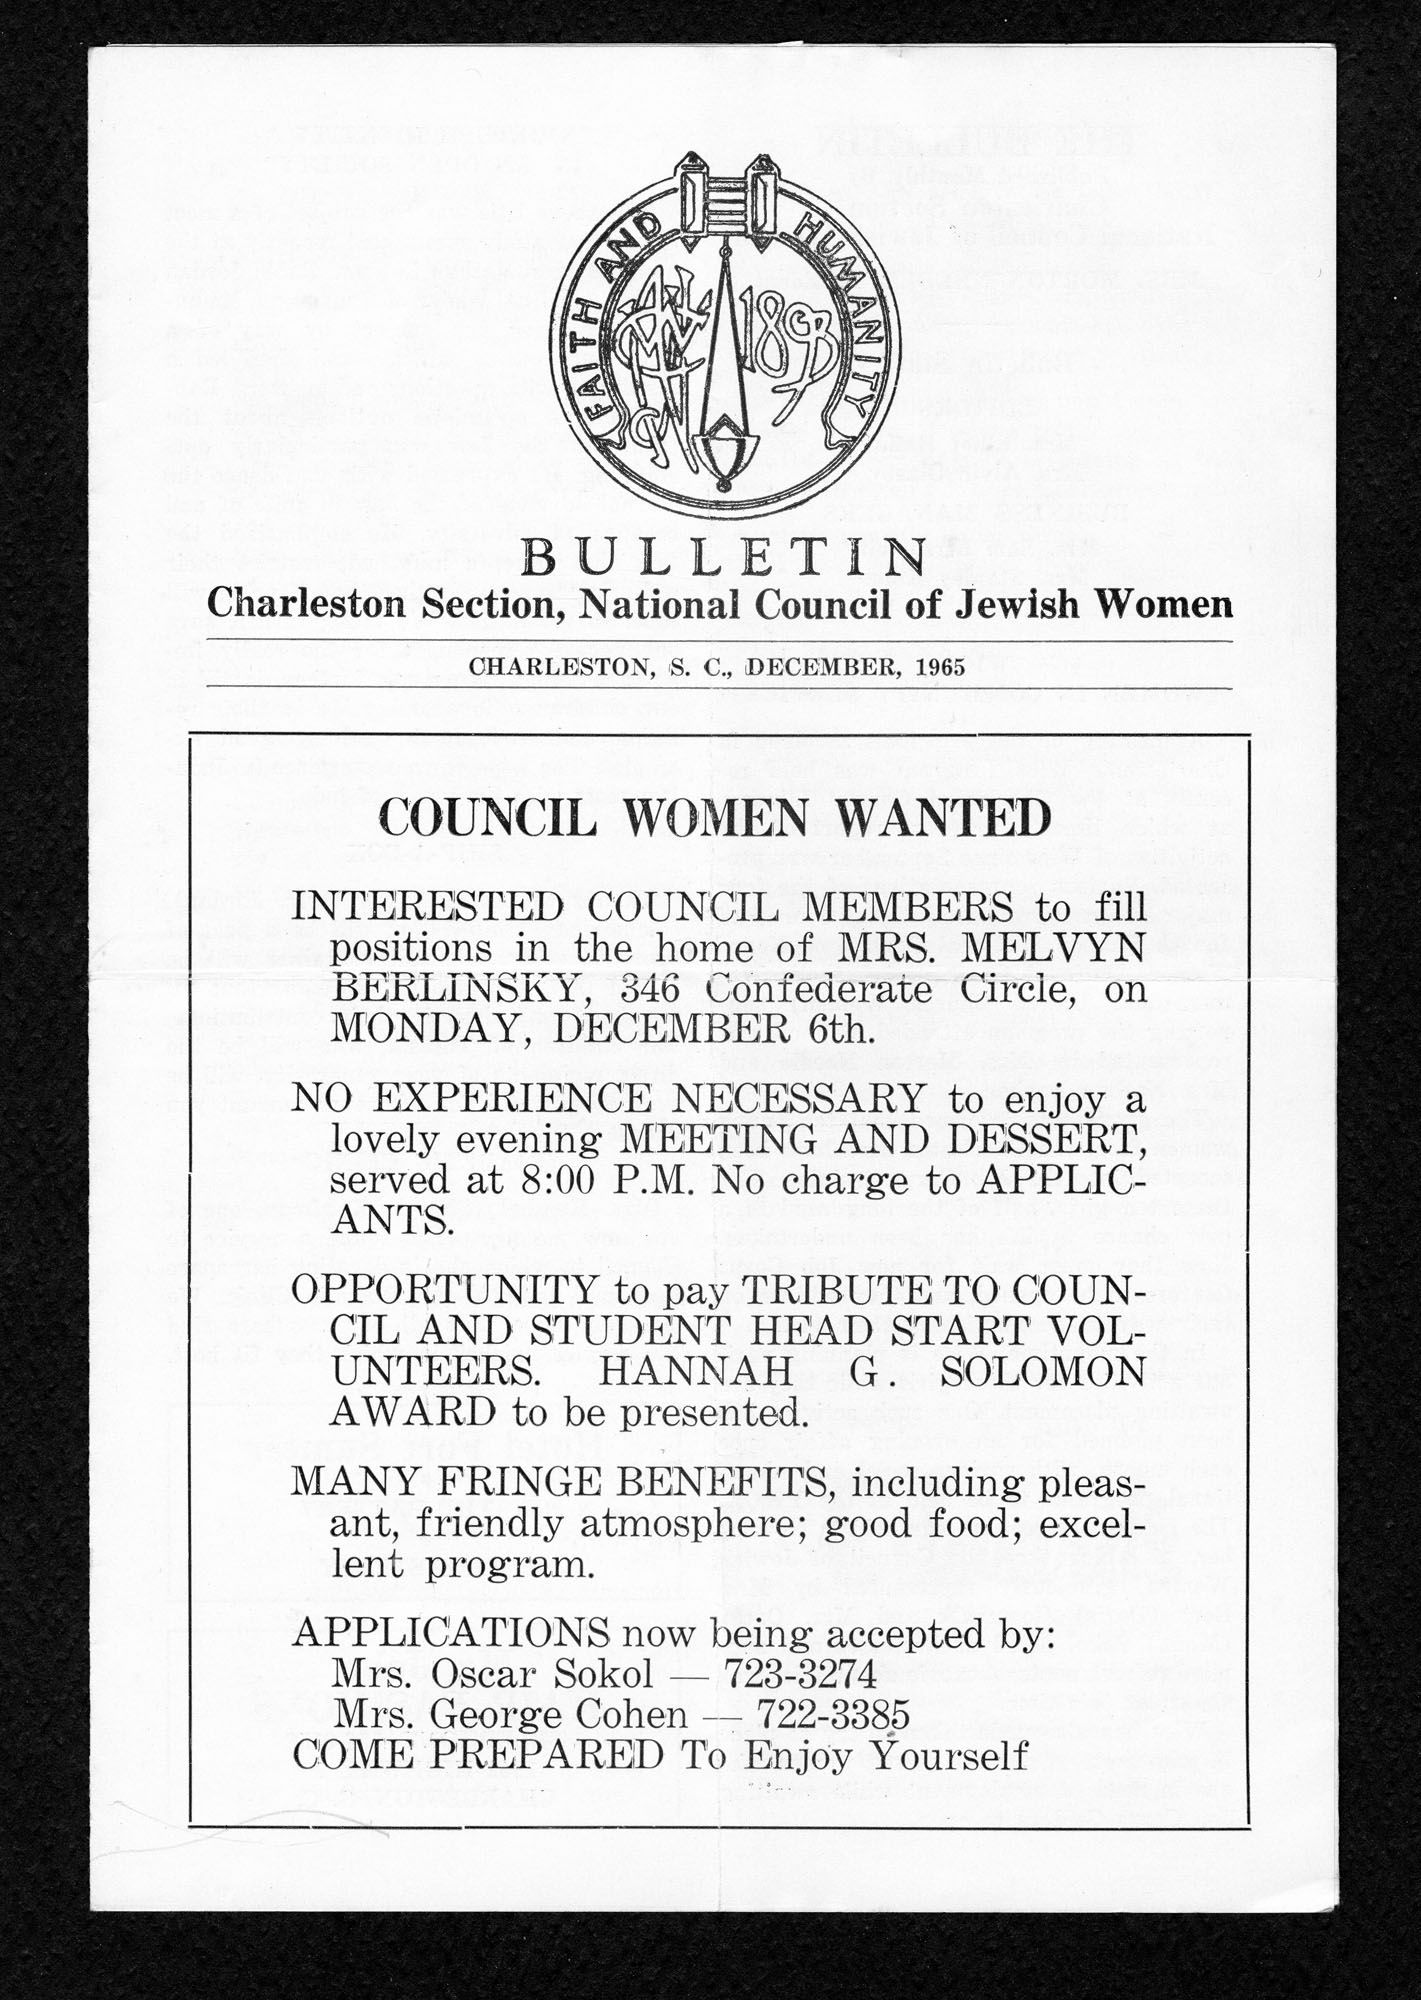 Bulletin from the Charleston section of the National Council of Jewish Women